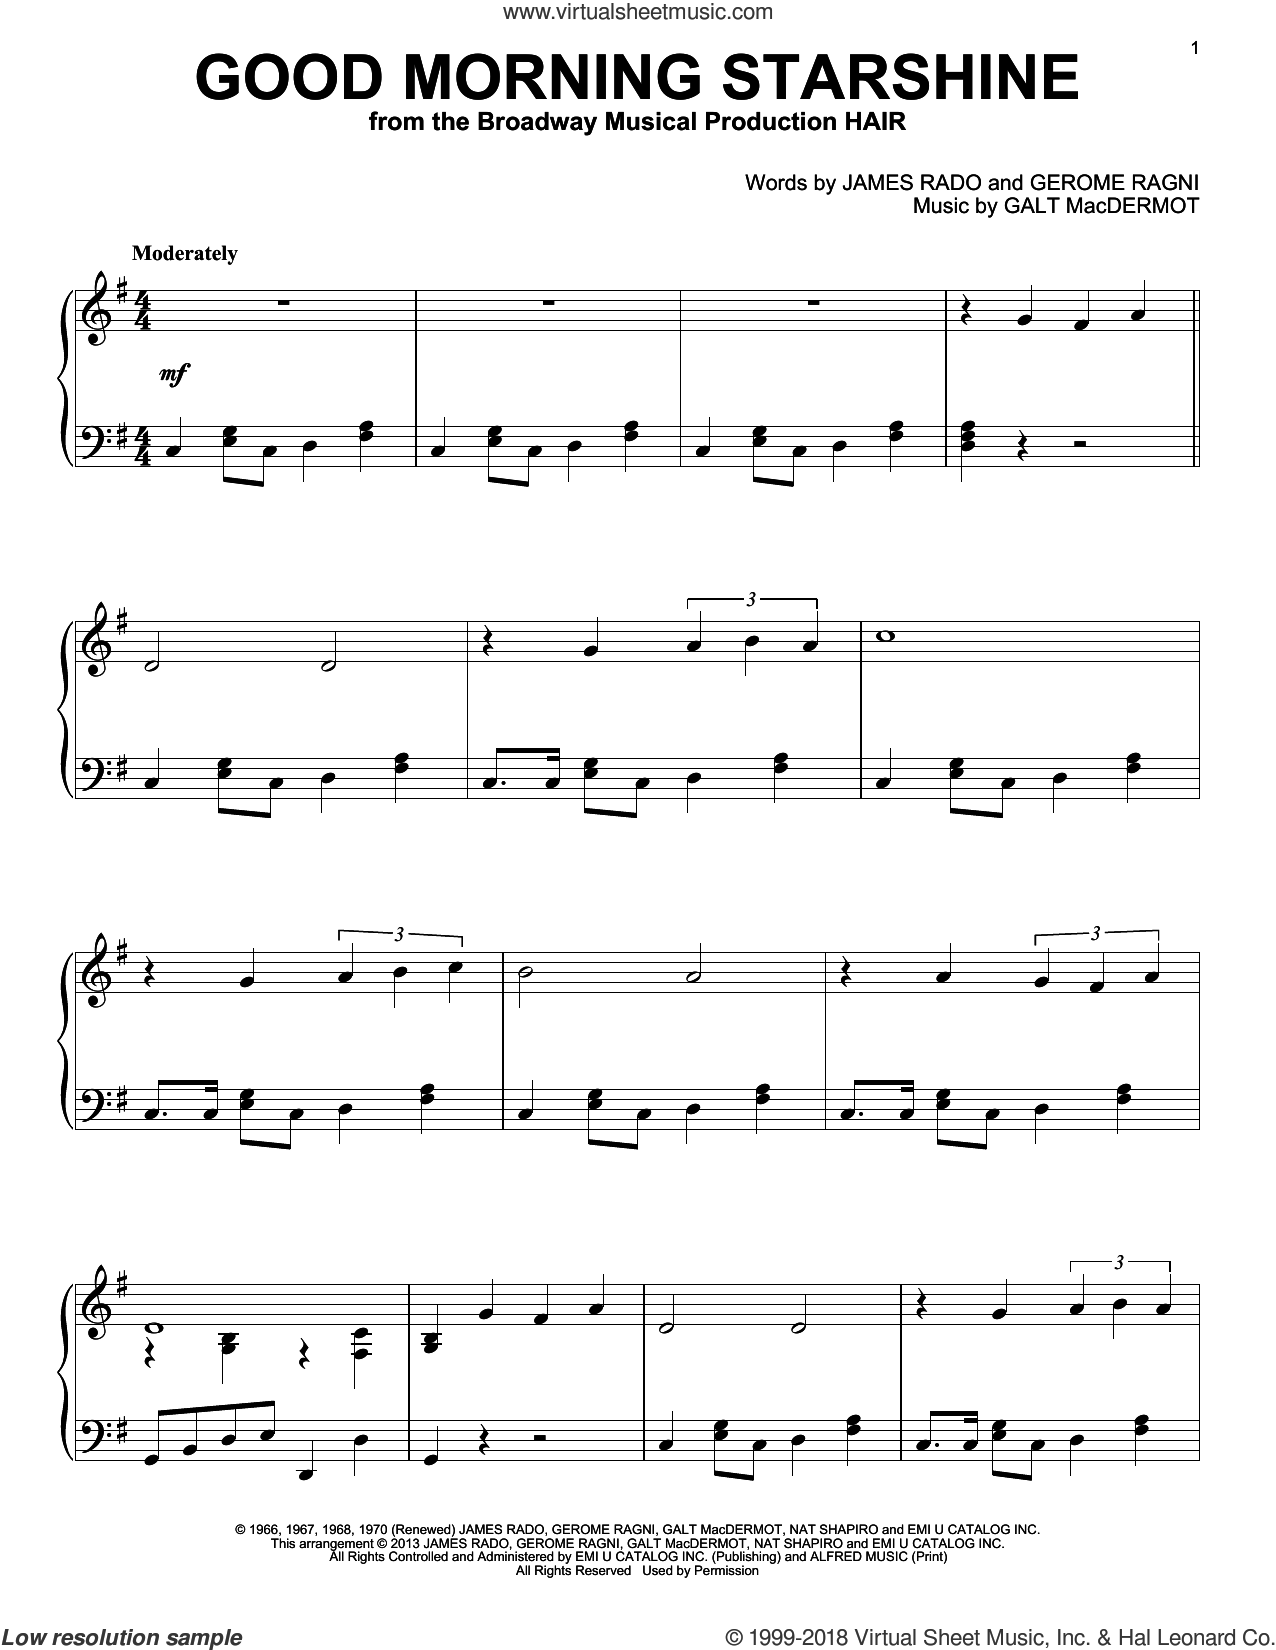 Good Morning Starshine sheet music for piano solo by Gerome Ragni